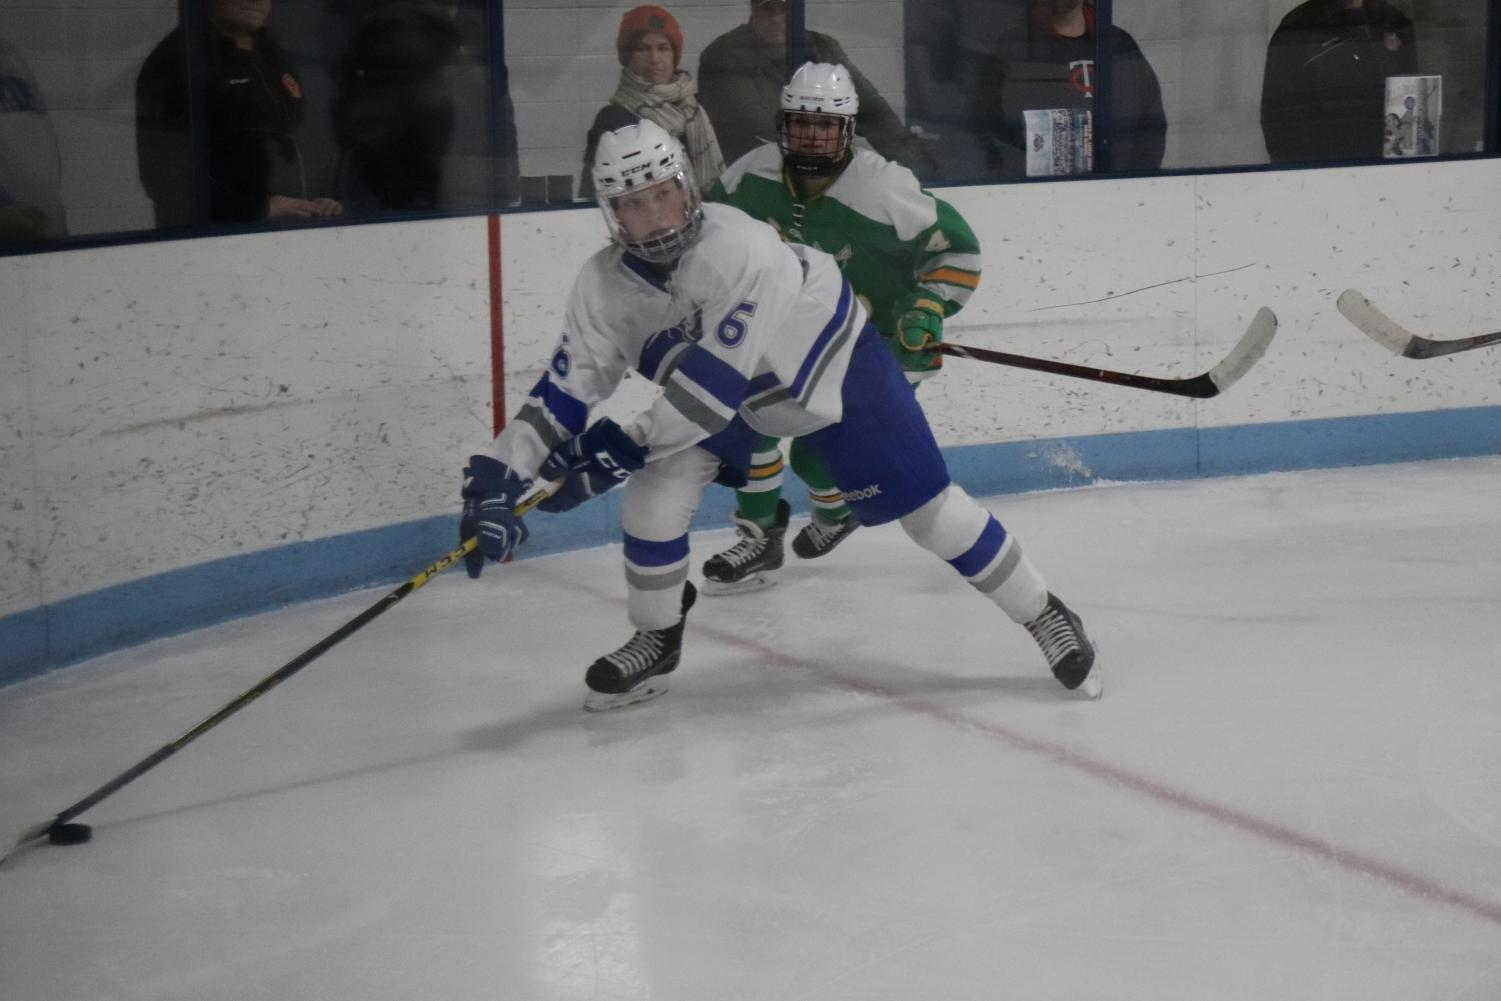 The Hopkins-Park hockey team lost to Edina 1-6 Jan. 6. The team ended their season Feb. 10 against Cretin-Derham Hall at the Palace Ice Garden arena.